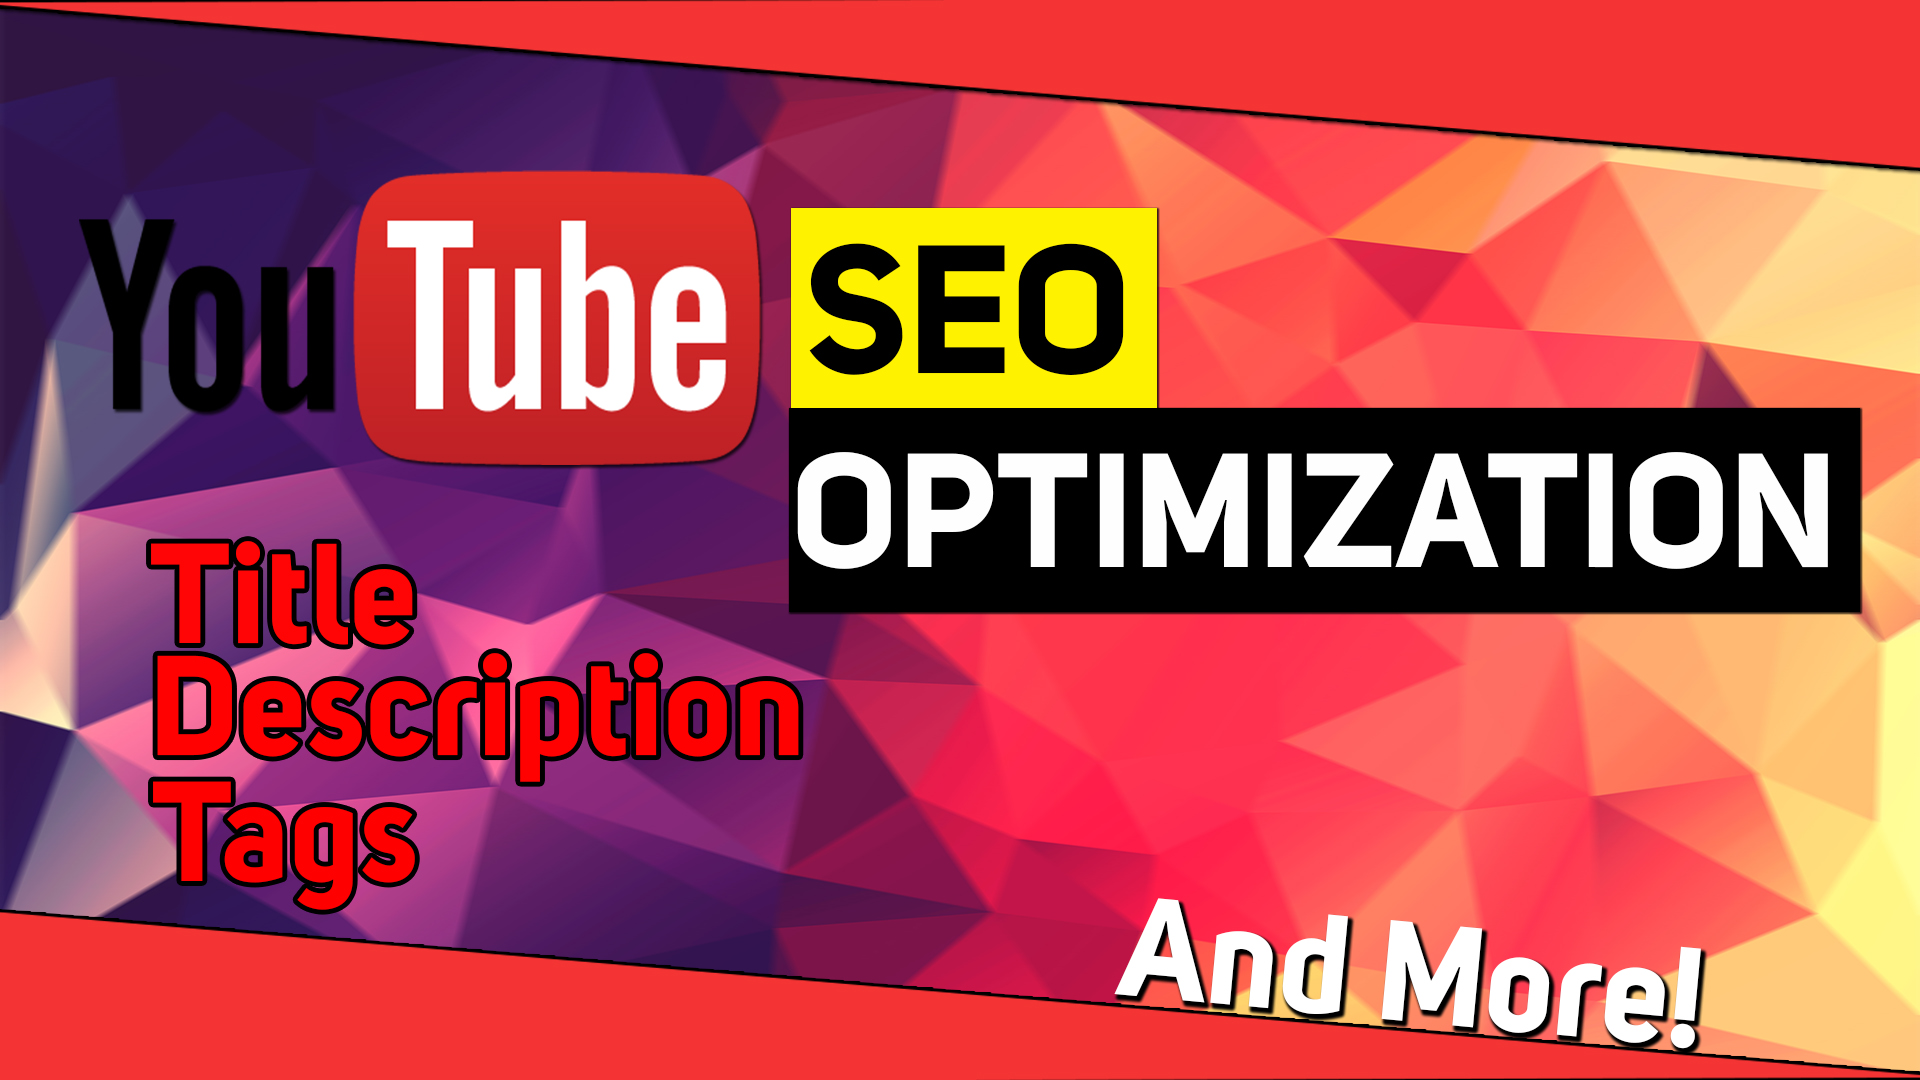 Complete & Professional SEO For Your Youtube Video